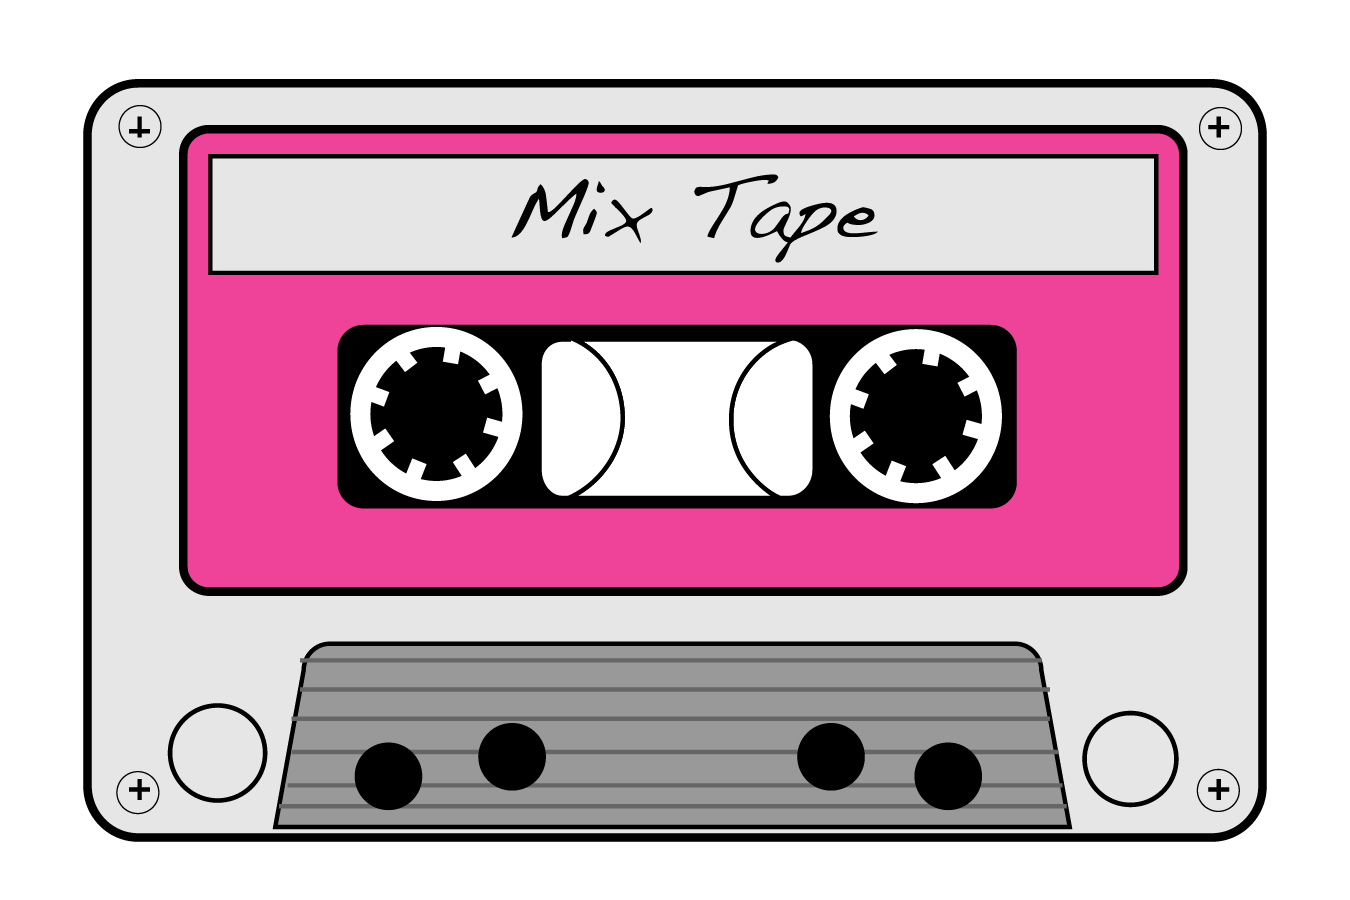 I do realize there are some readers (youngsters)out there in Blog Land who have no idea what this is. ;) Who remembers this? Do you remember being tempted to pull the shiny, black tape? If you actuallydid it, you paid the price by having to take a pencil and spin that %$^$#back into the cassette. Consequences....